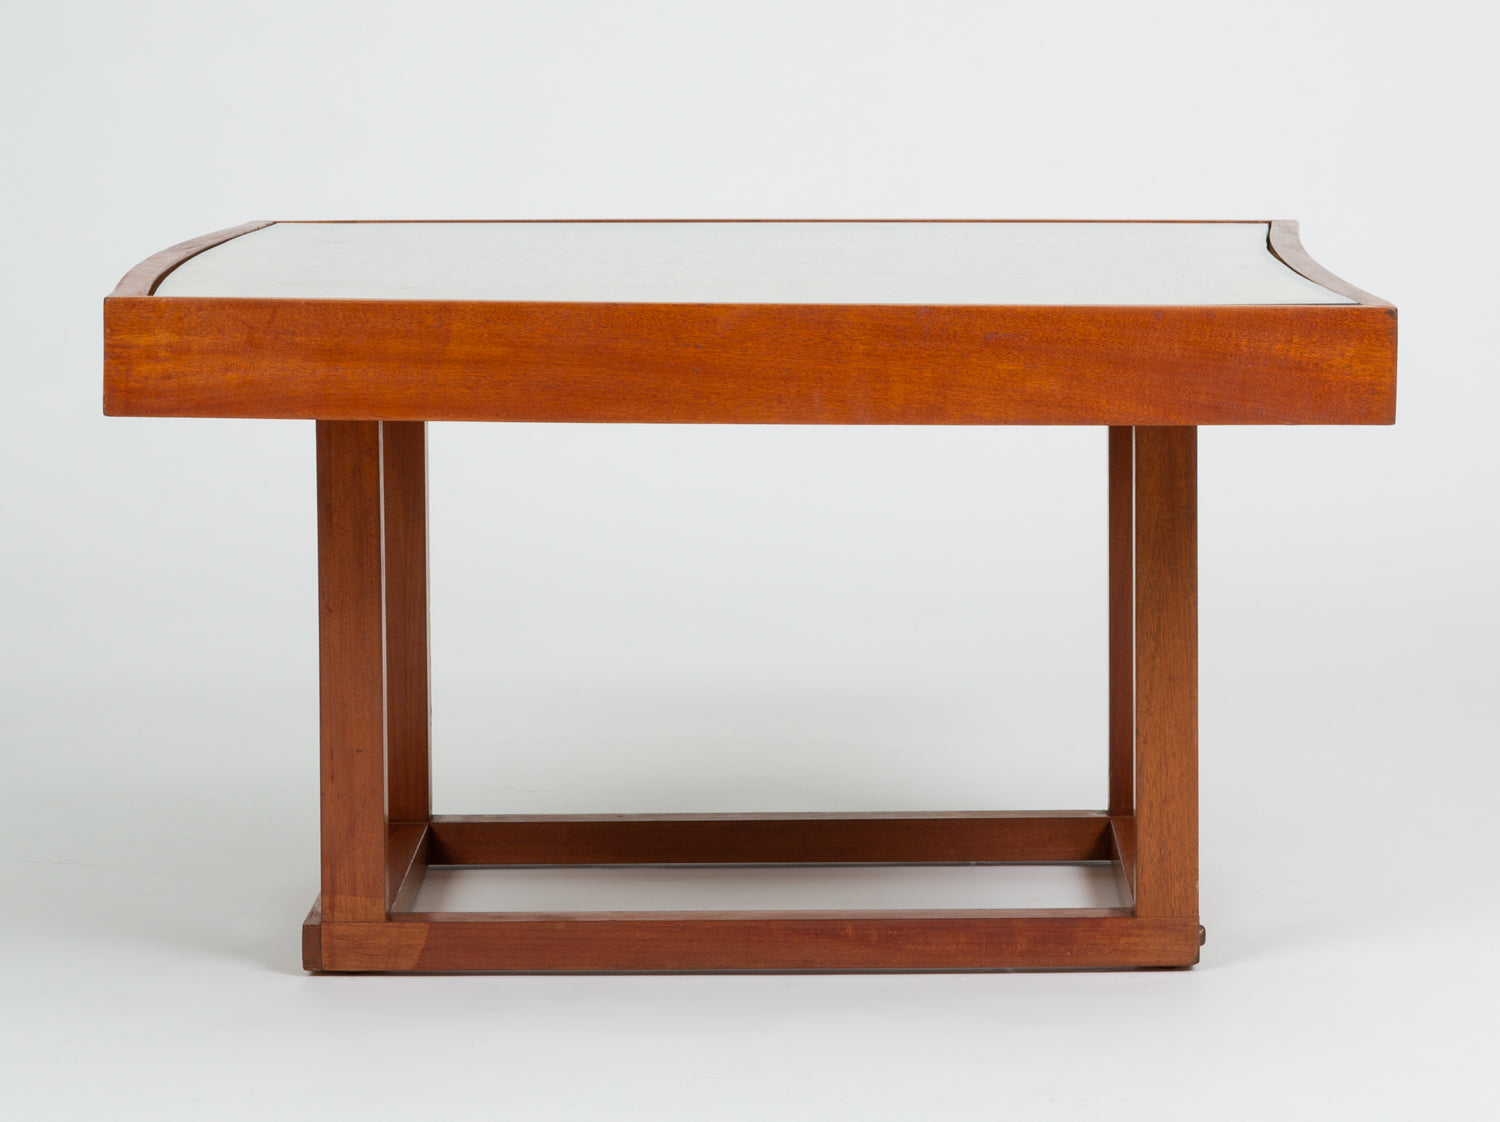 Fabulous Mexican Modern Convertible Coffee Dining Table By Michael Van Beuren For Domus Mexico Caraccident5 Cool Chair Designs And Ideas Caraccident5Info